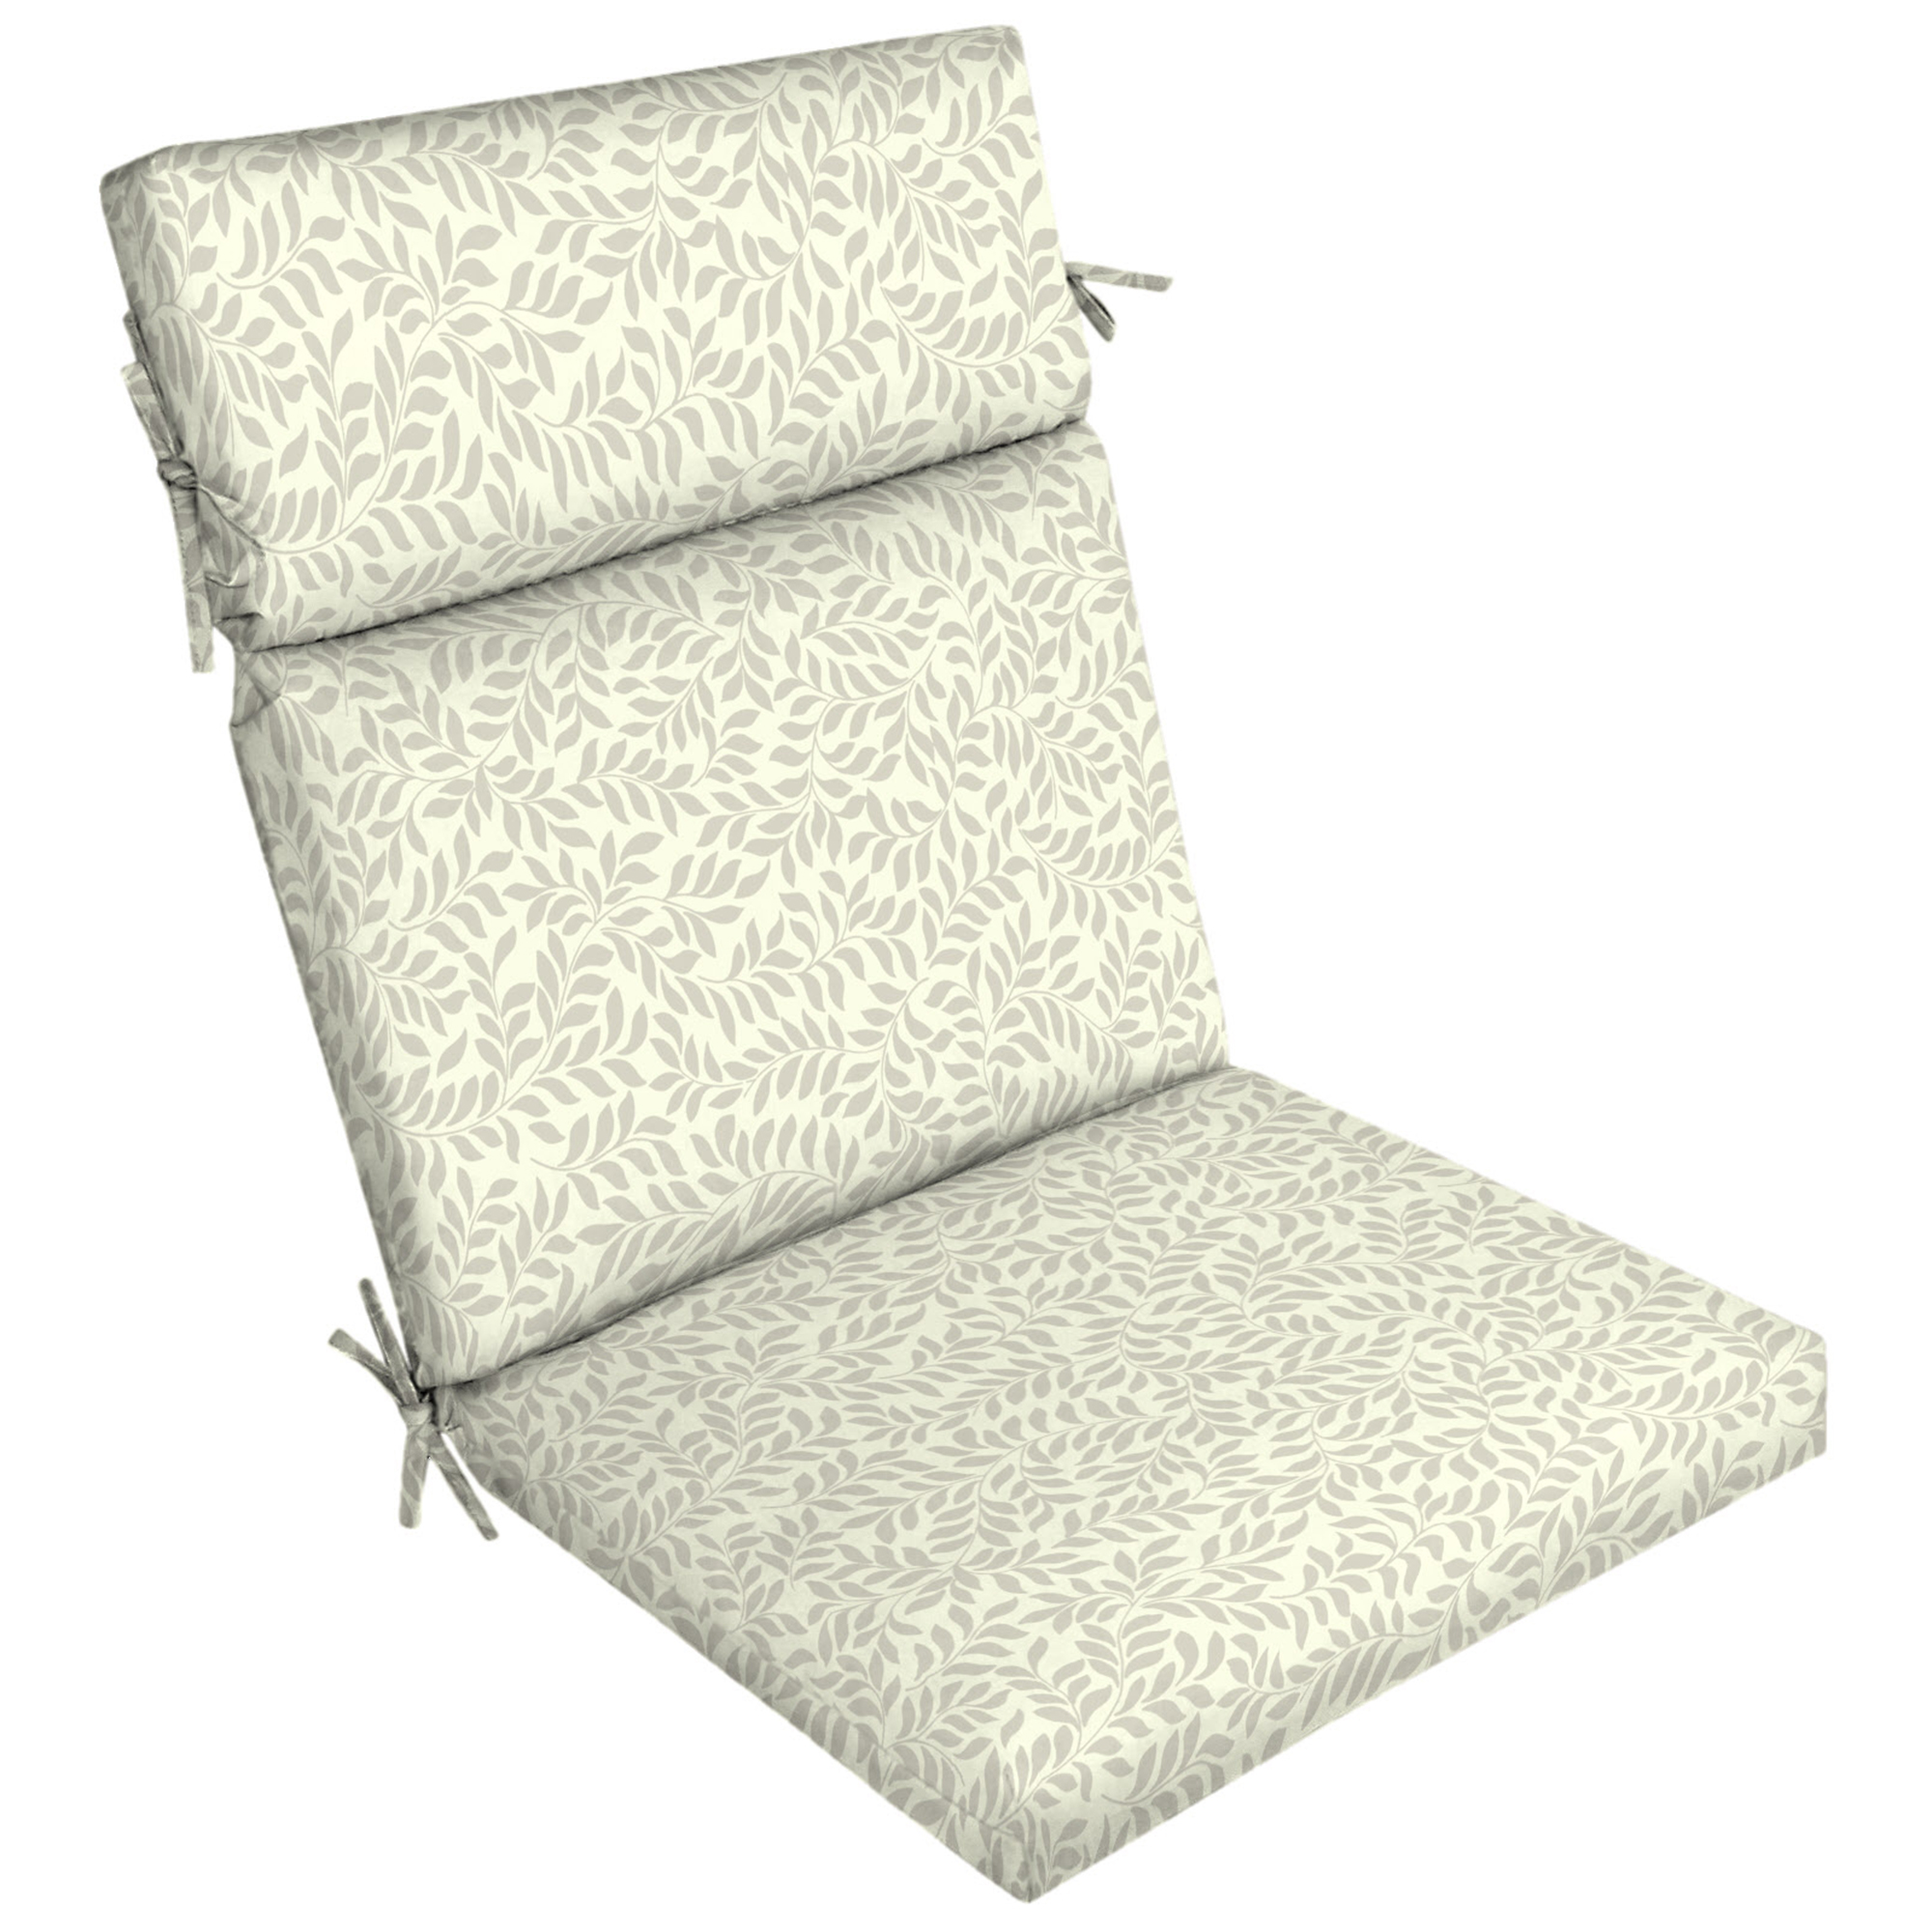 "Better Homes & Gardens Ivory Leaf 21""W x 44""L Outdoor Dining Chair Cushion"